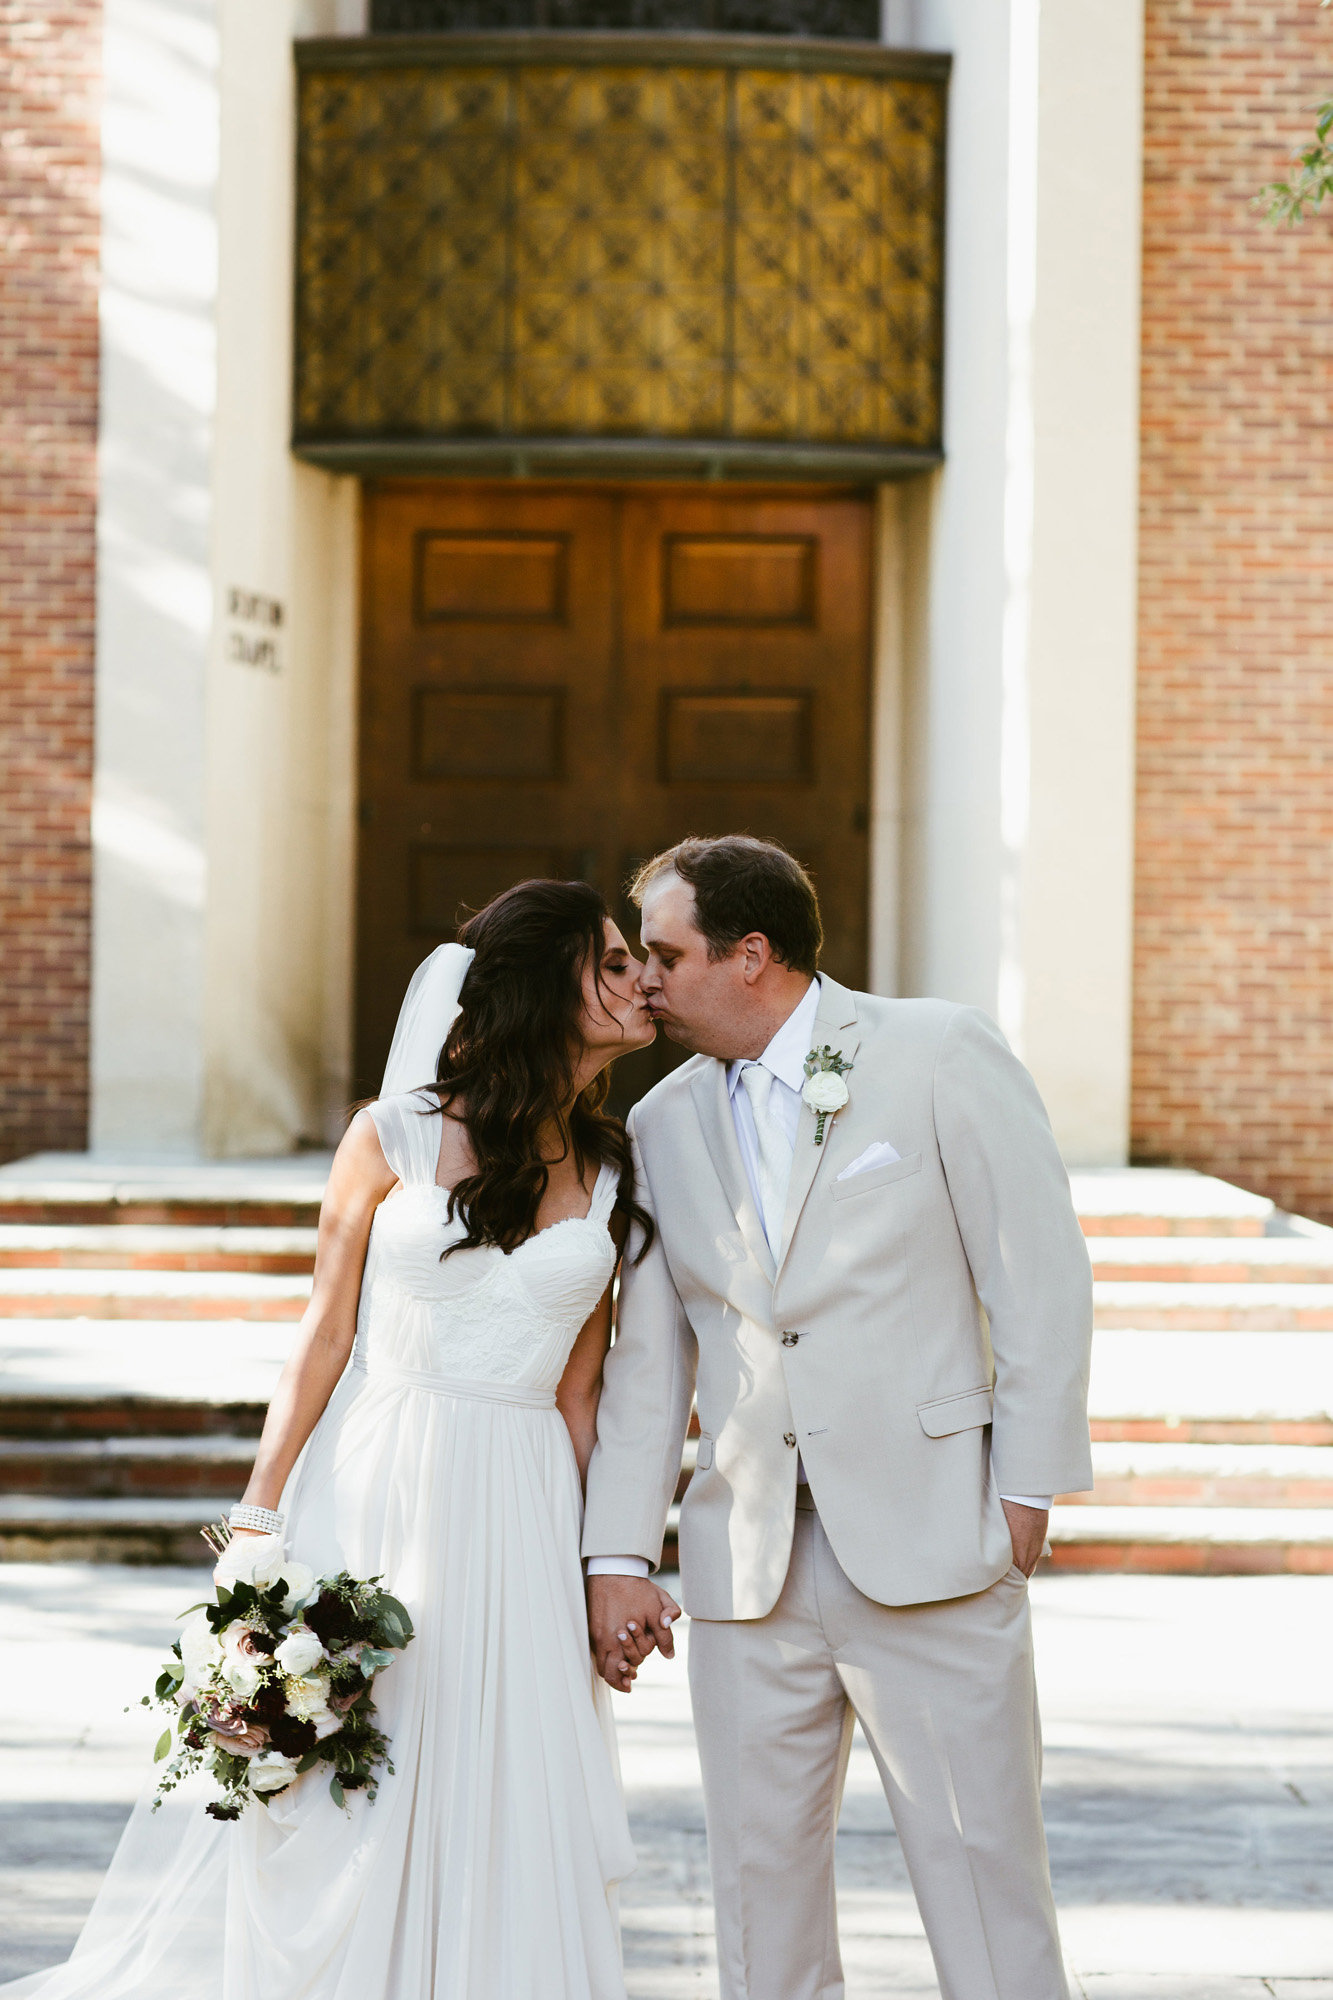 saralane-and-stevie-wedding-emily-jonathan-nashville-tn-LRE-382b_1